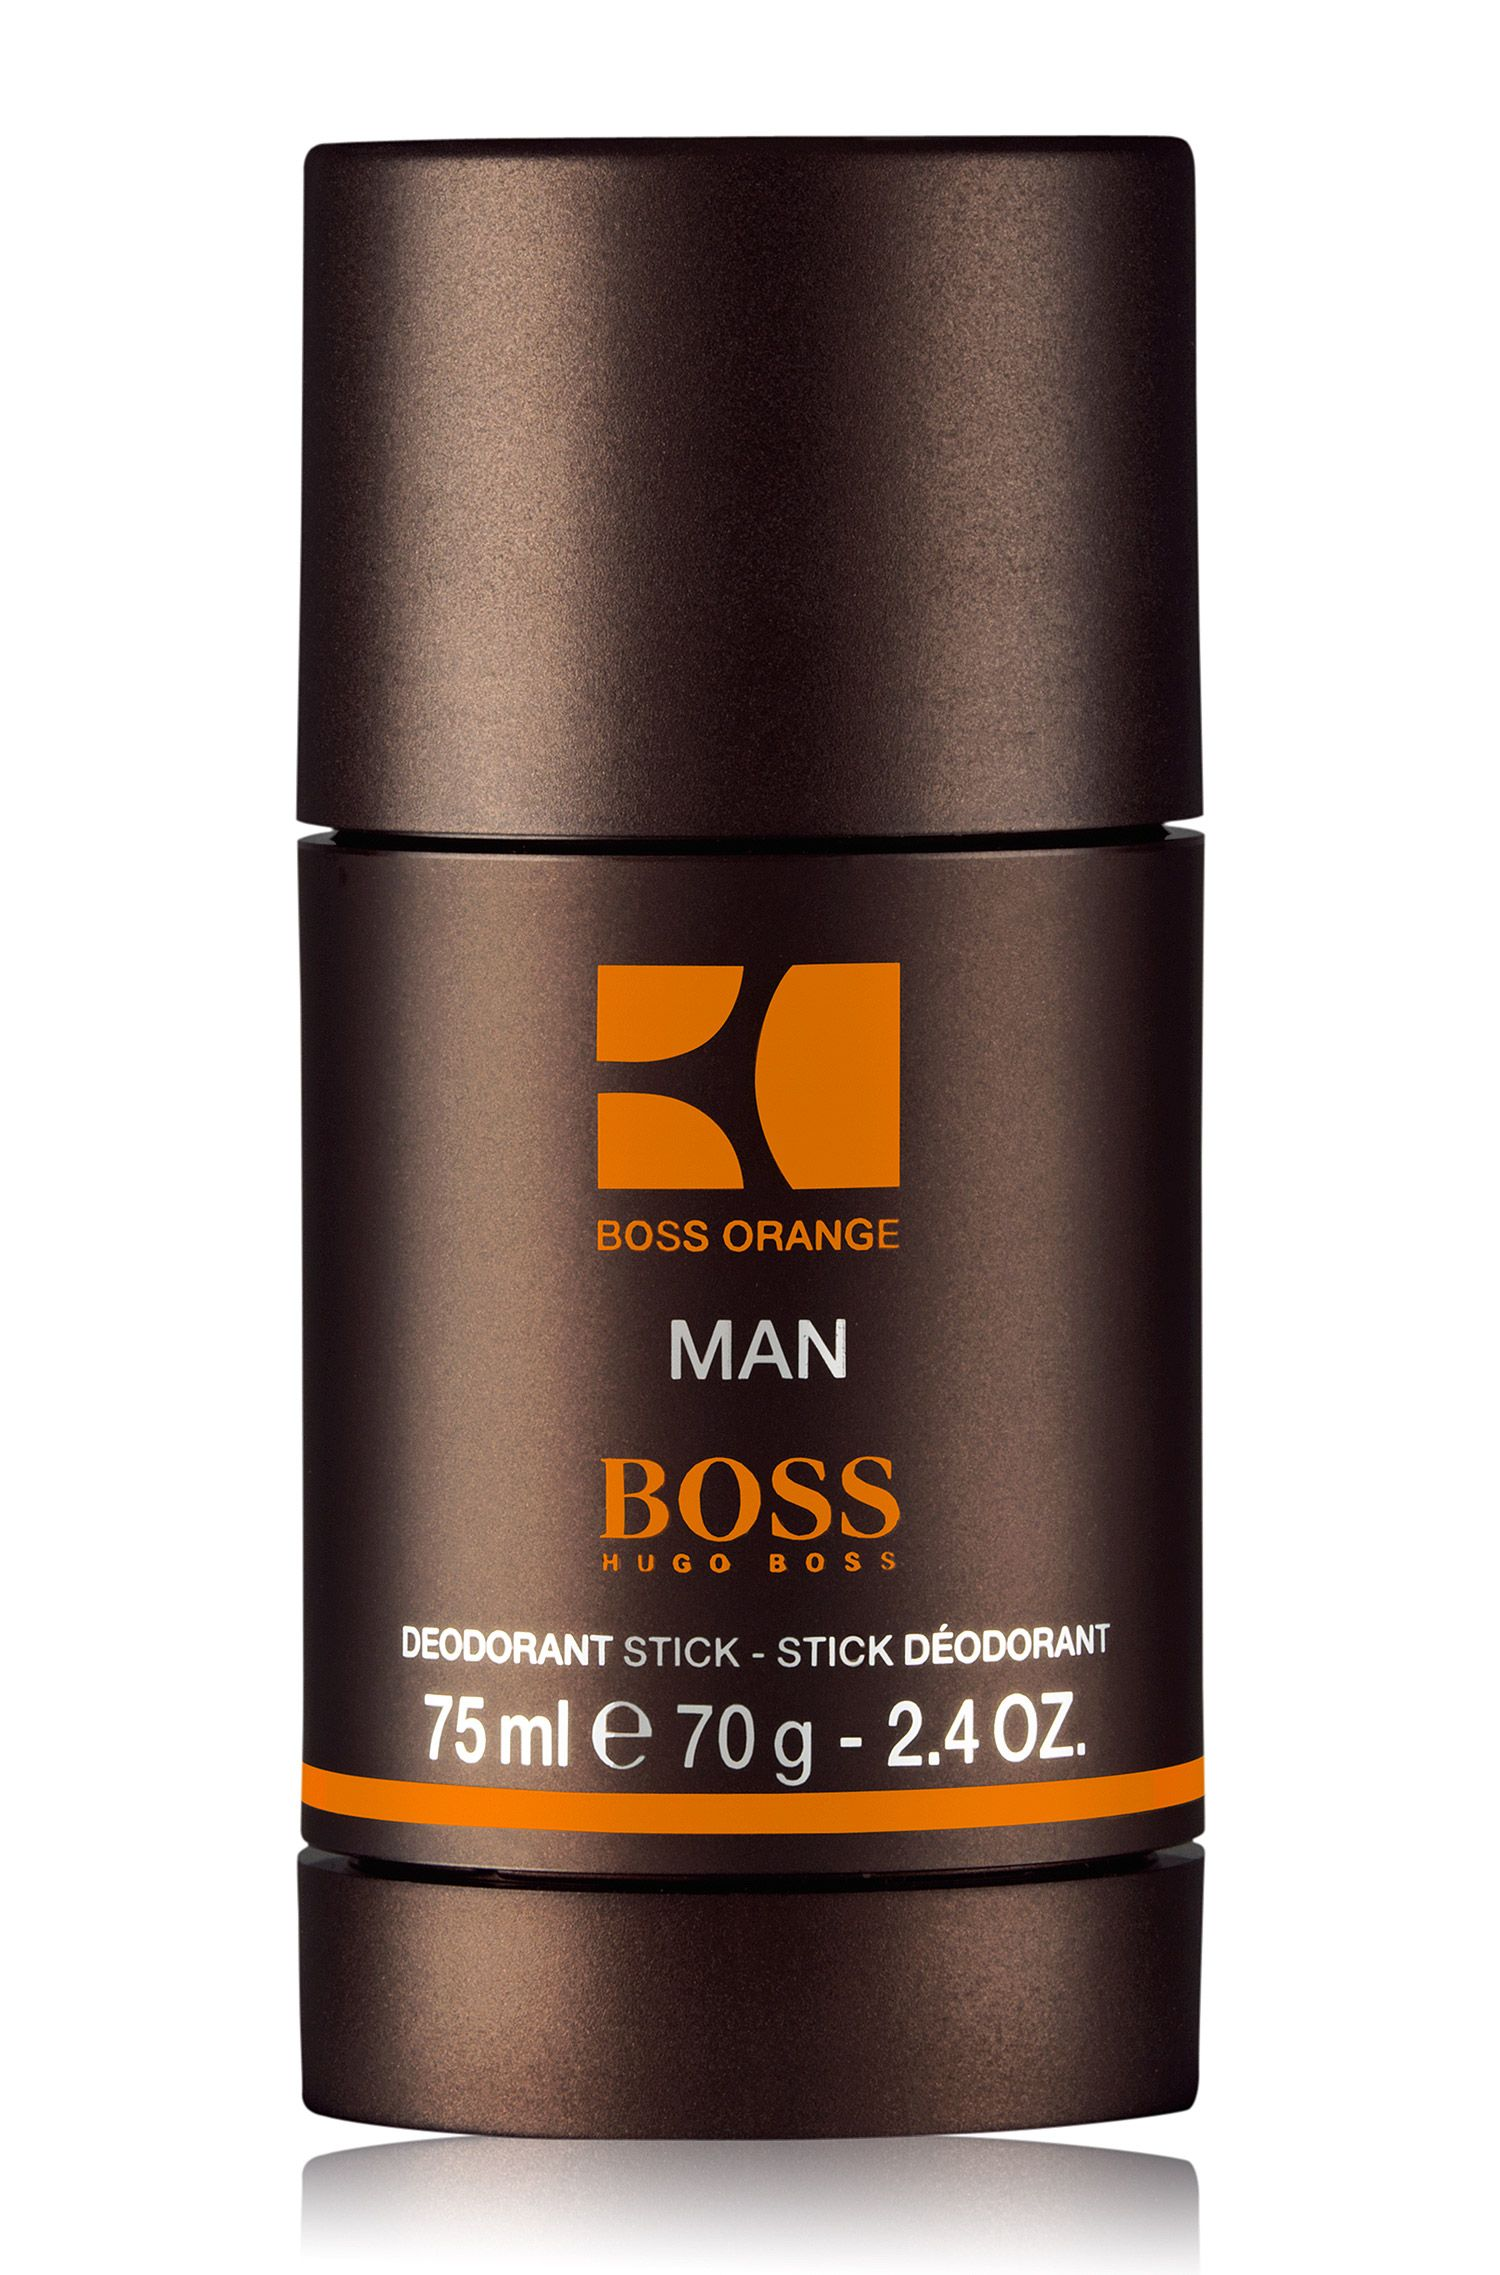 Deodorante stick BOSS Orange Man 75 ml